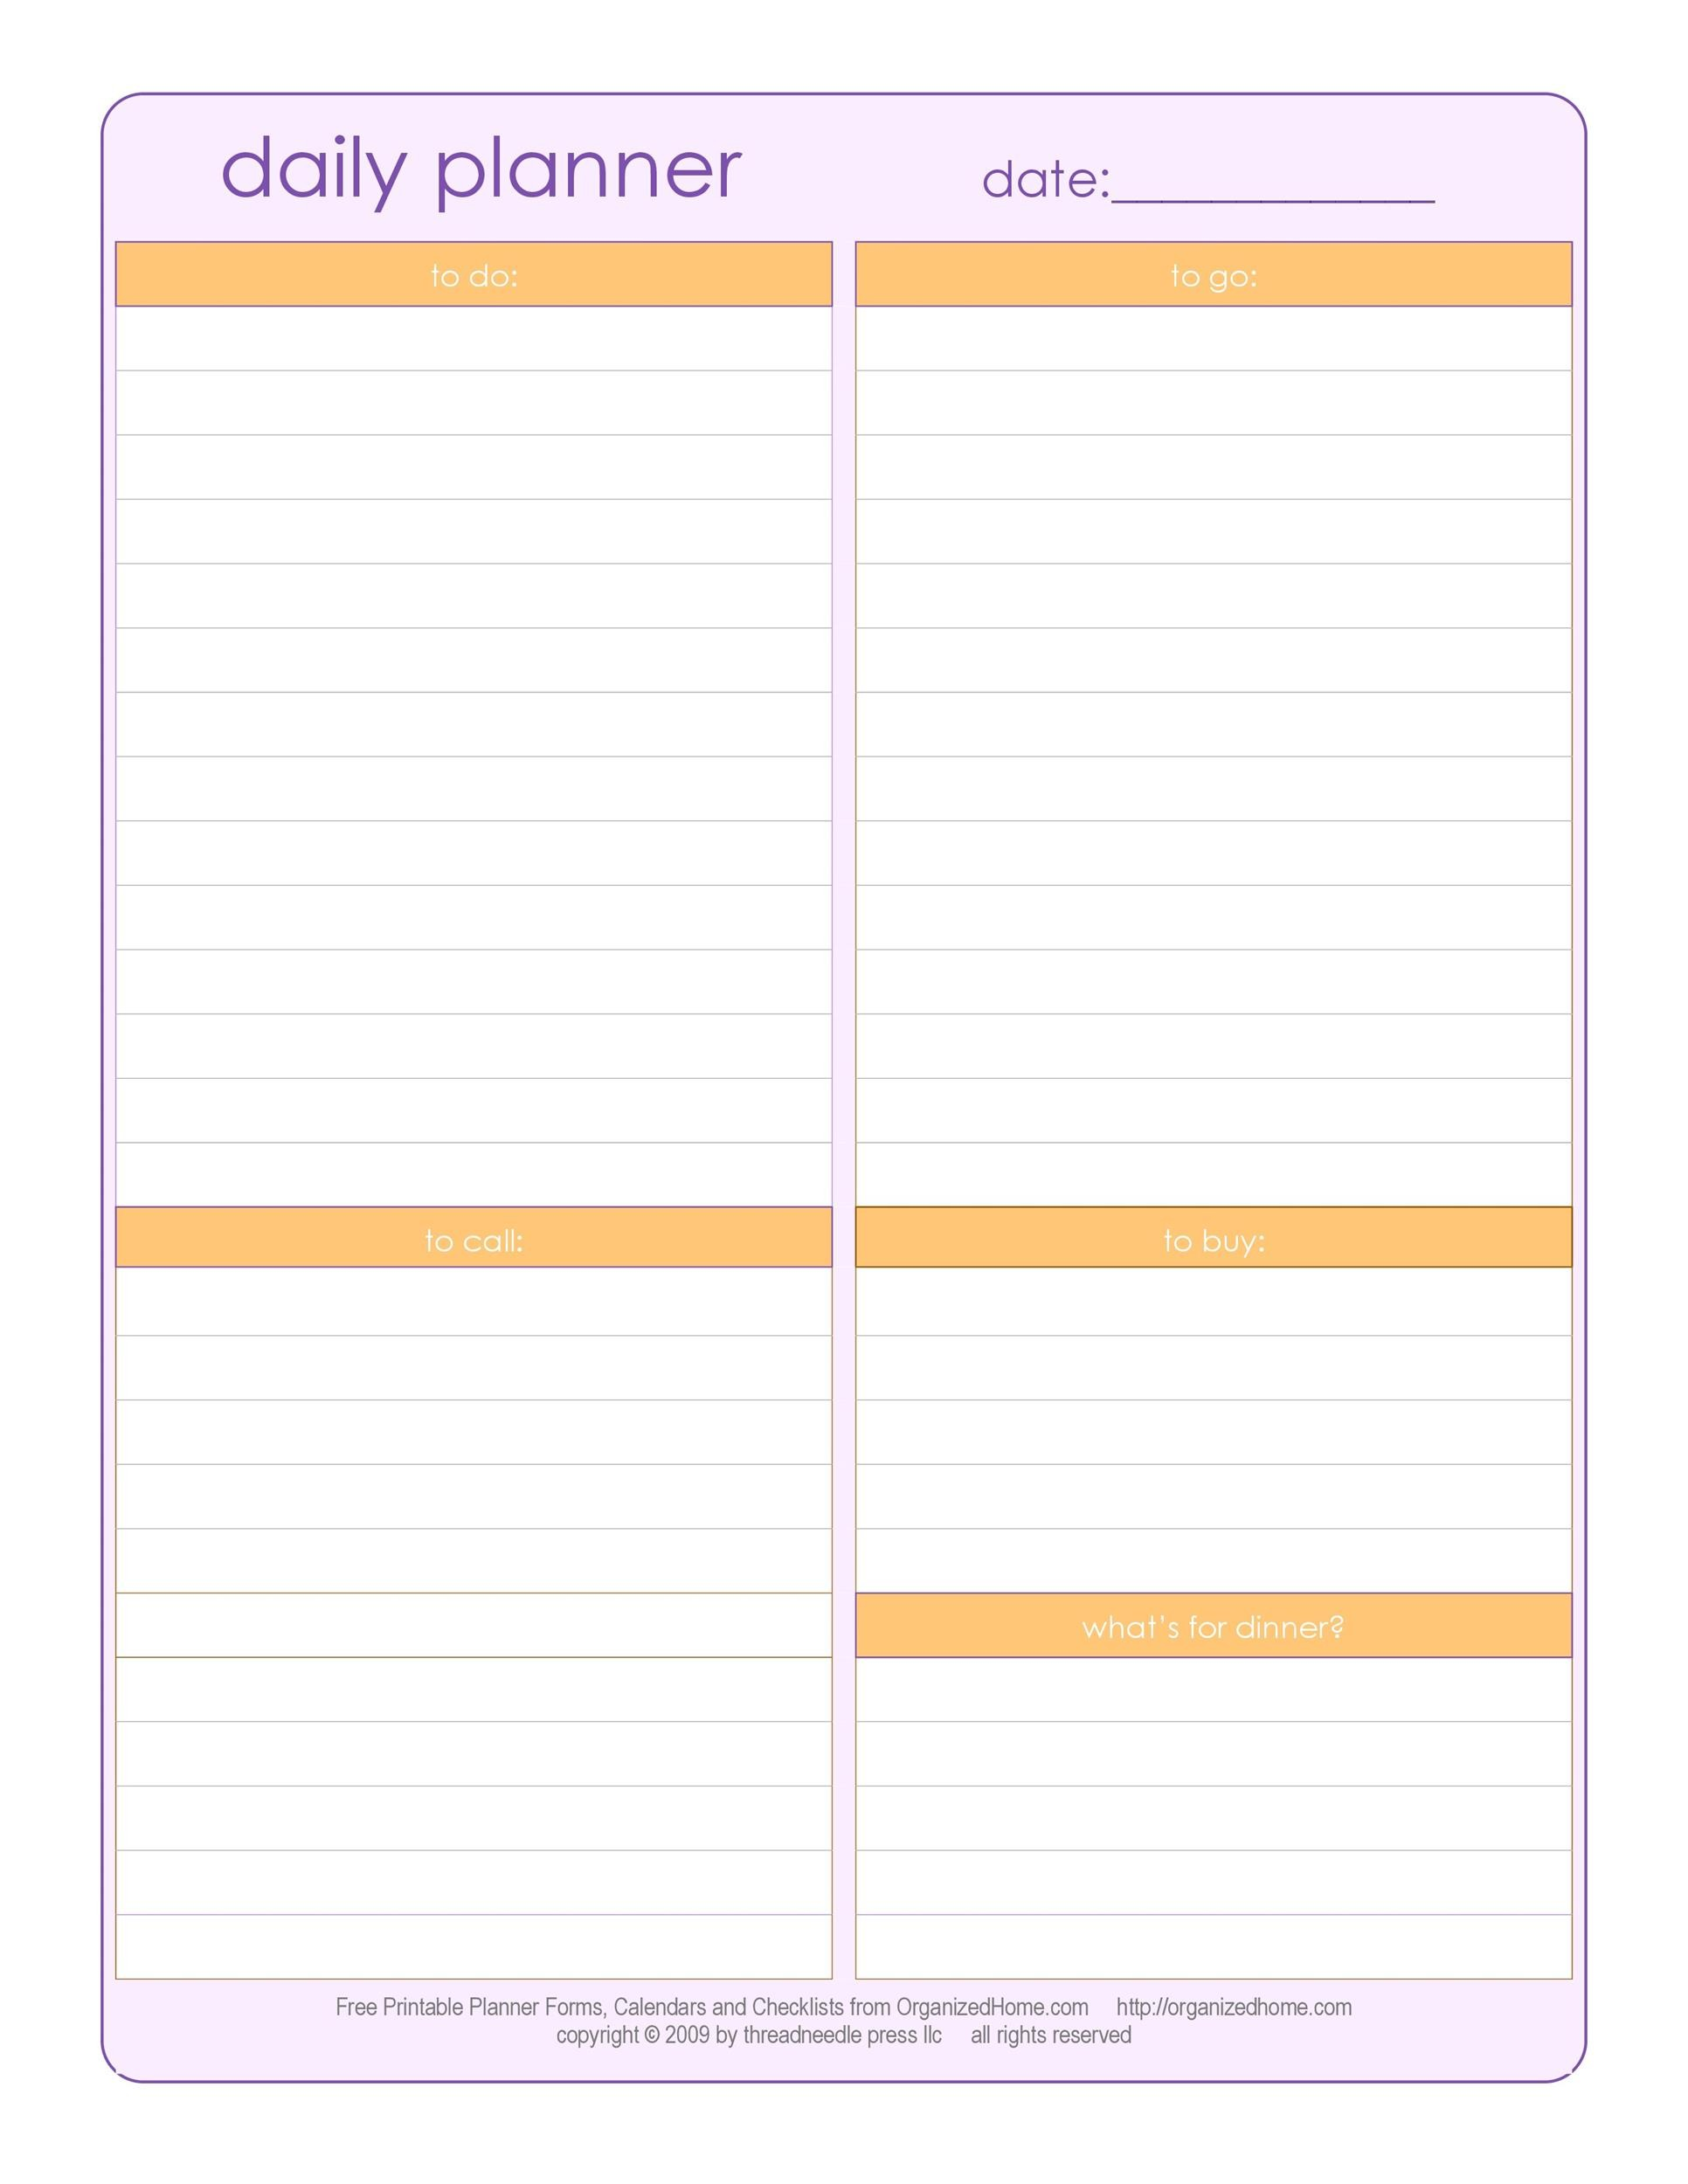 photograph relating to Free Printable Planners referred to as 40+ Printable Every day Planner Templates (Totally free) ᐅ Template Lab